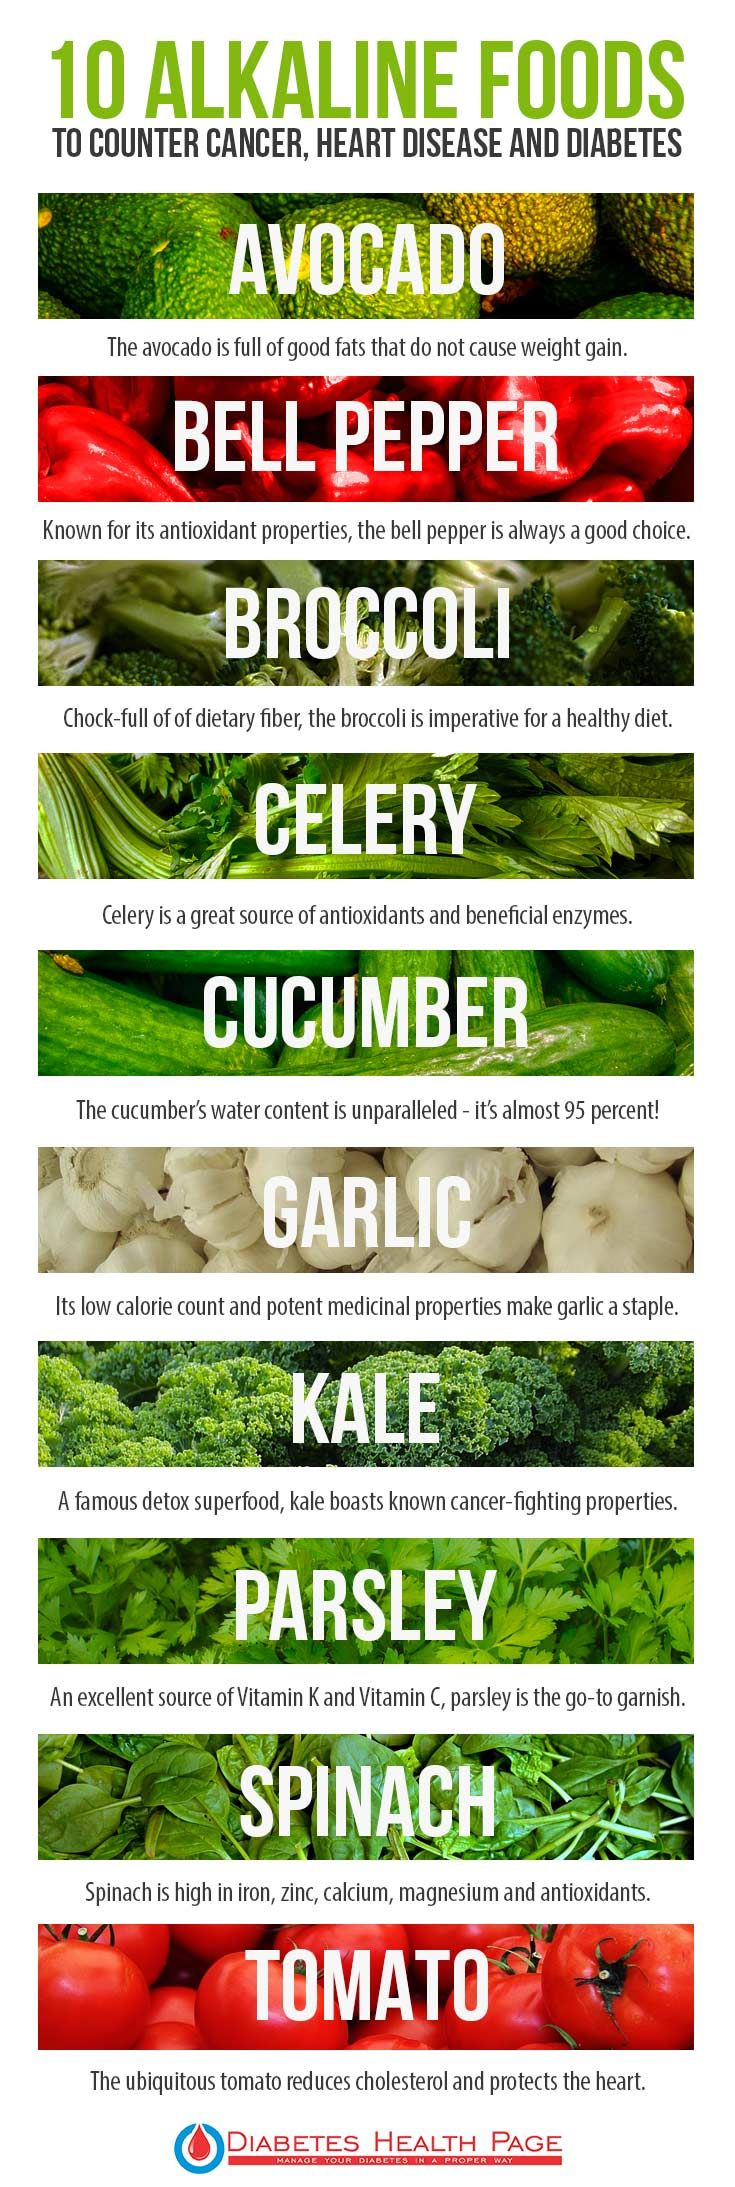 10 Alkaline Foods that Help Treat Gout, Diabetes, Cancer, and Heart Disease  Here's a list of ten alkaline foods that are good for your heart, blood glucose levels, weight loss process, and so much more.